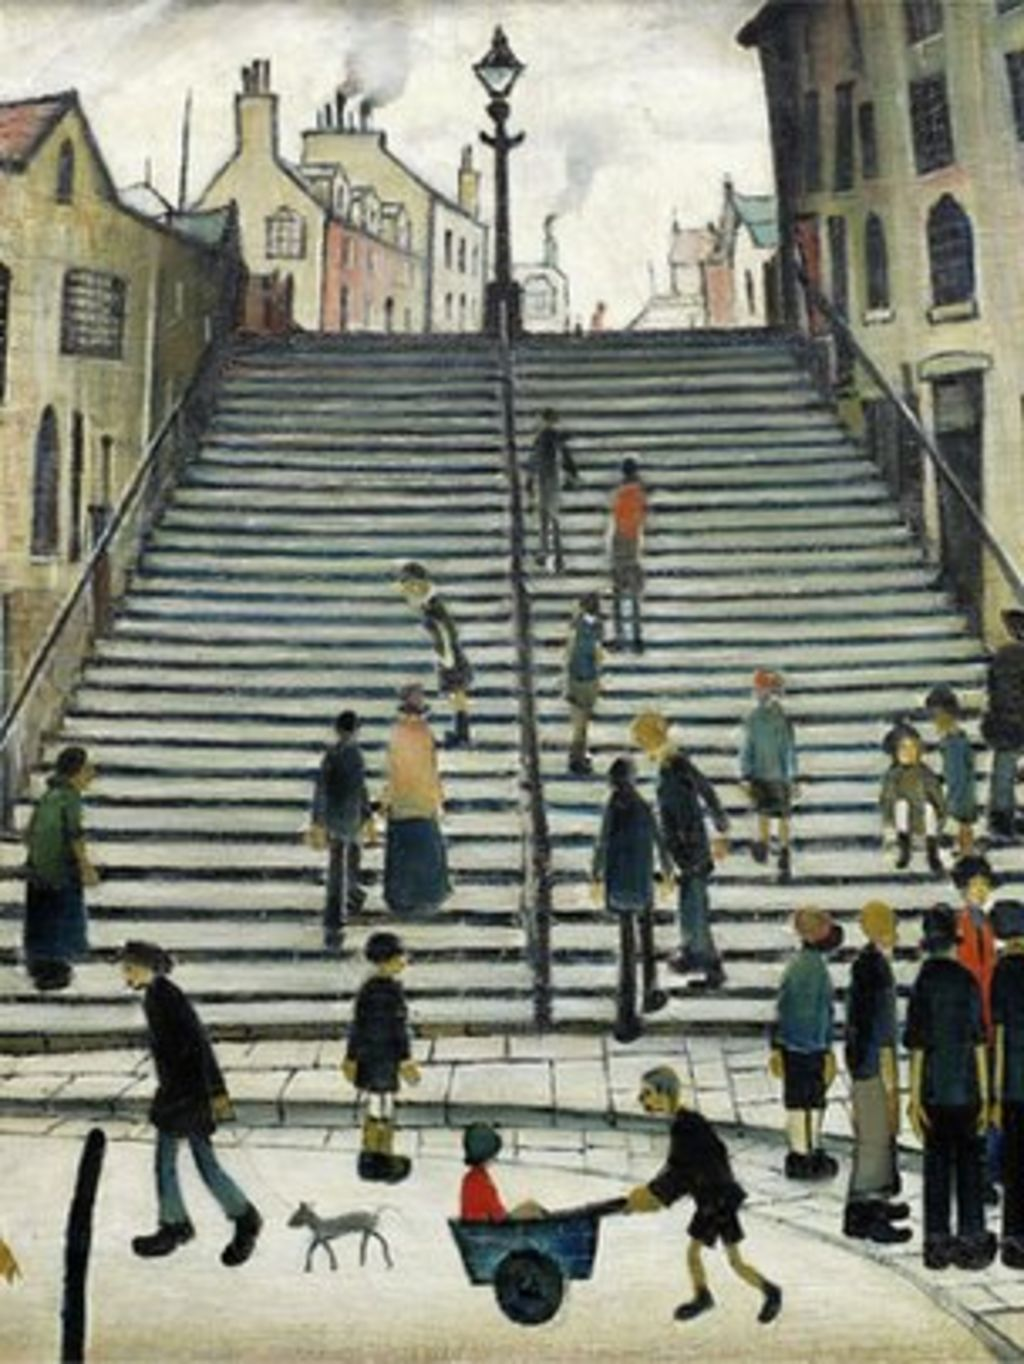 ls lowry painting steps at wick to be auctioned